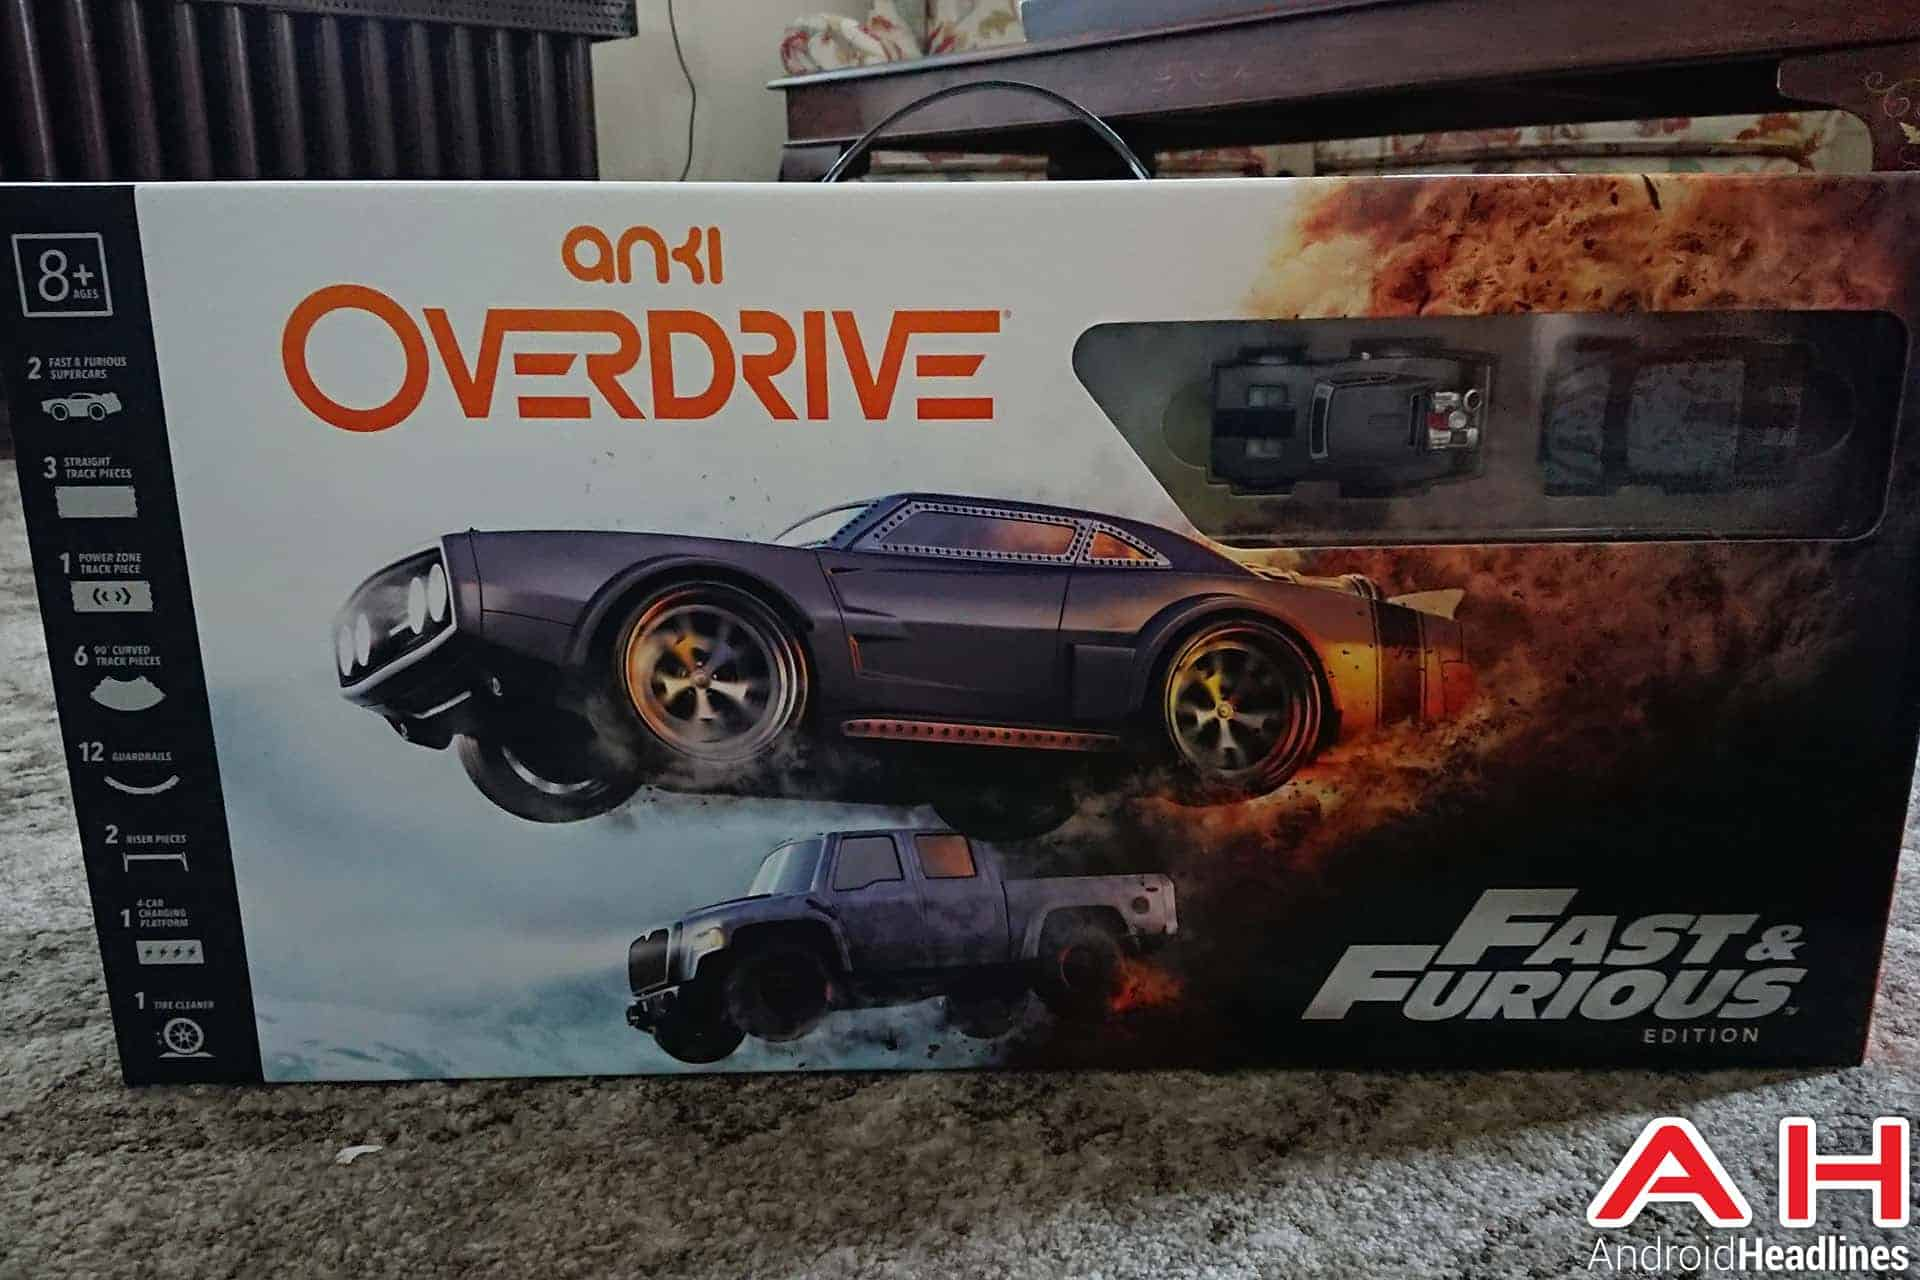 Anki Overdrive: Fast & Furious Edition Now Available | Androidheadlines.com